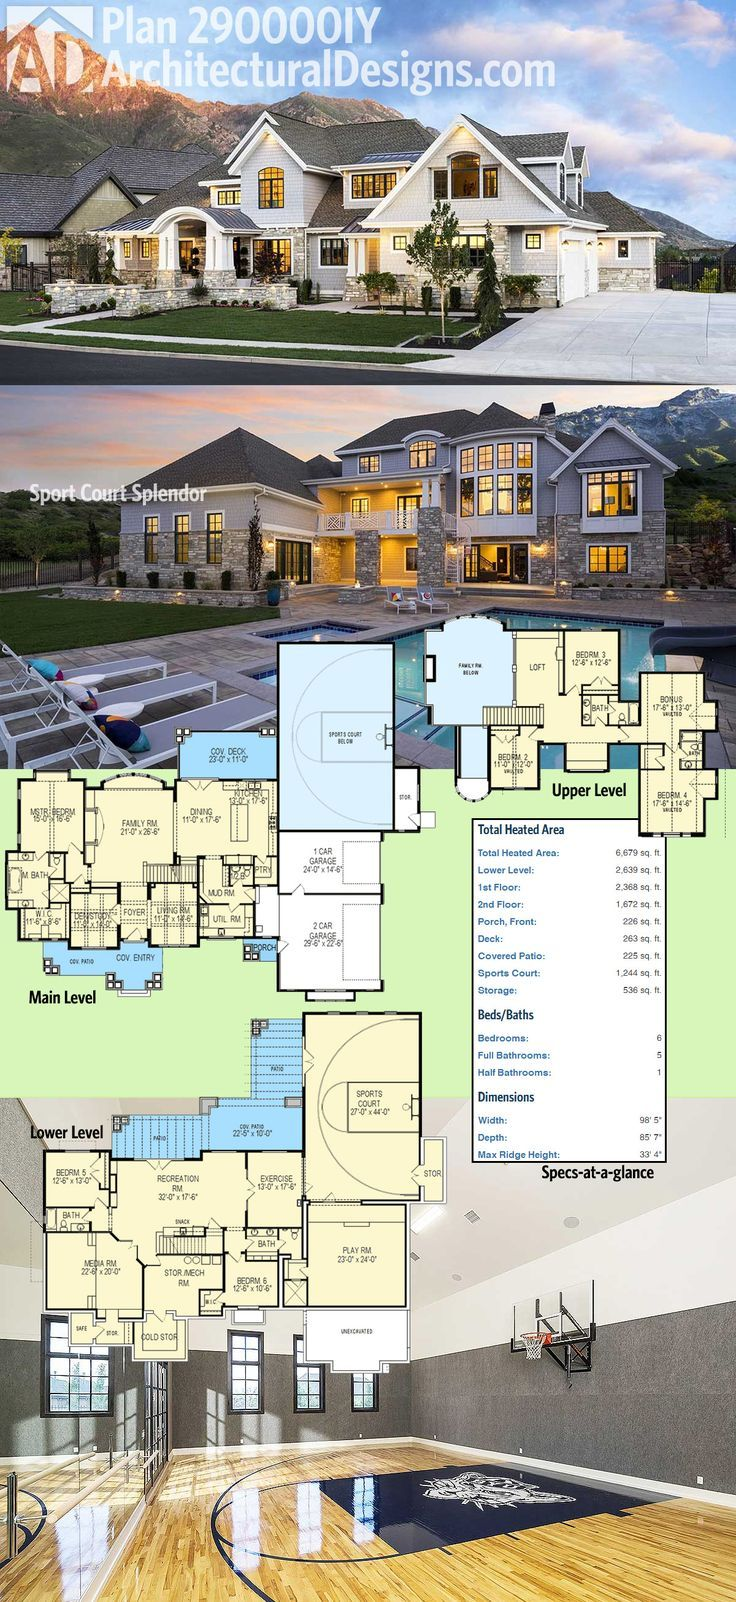 45 best house plans with sport courts images on pinterest | dream